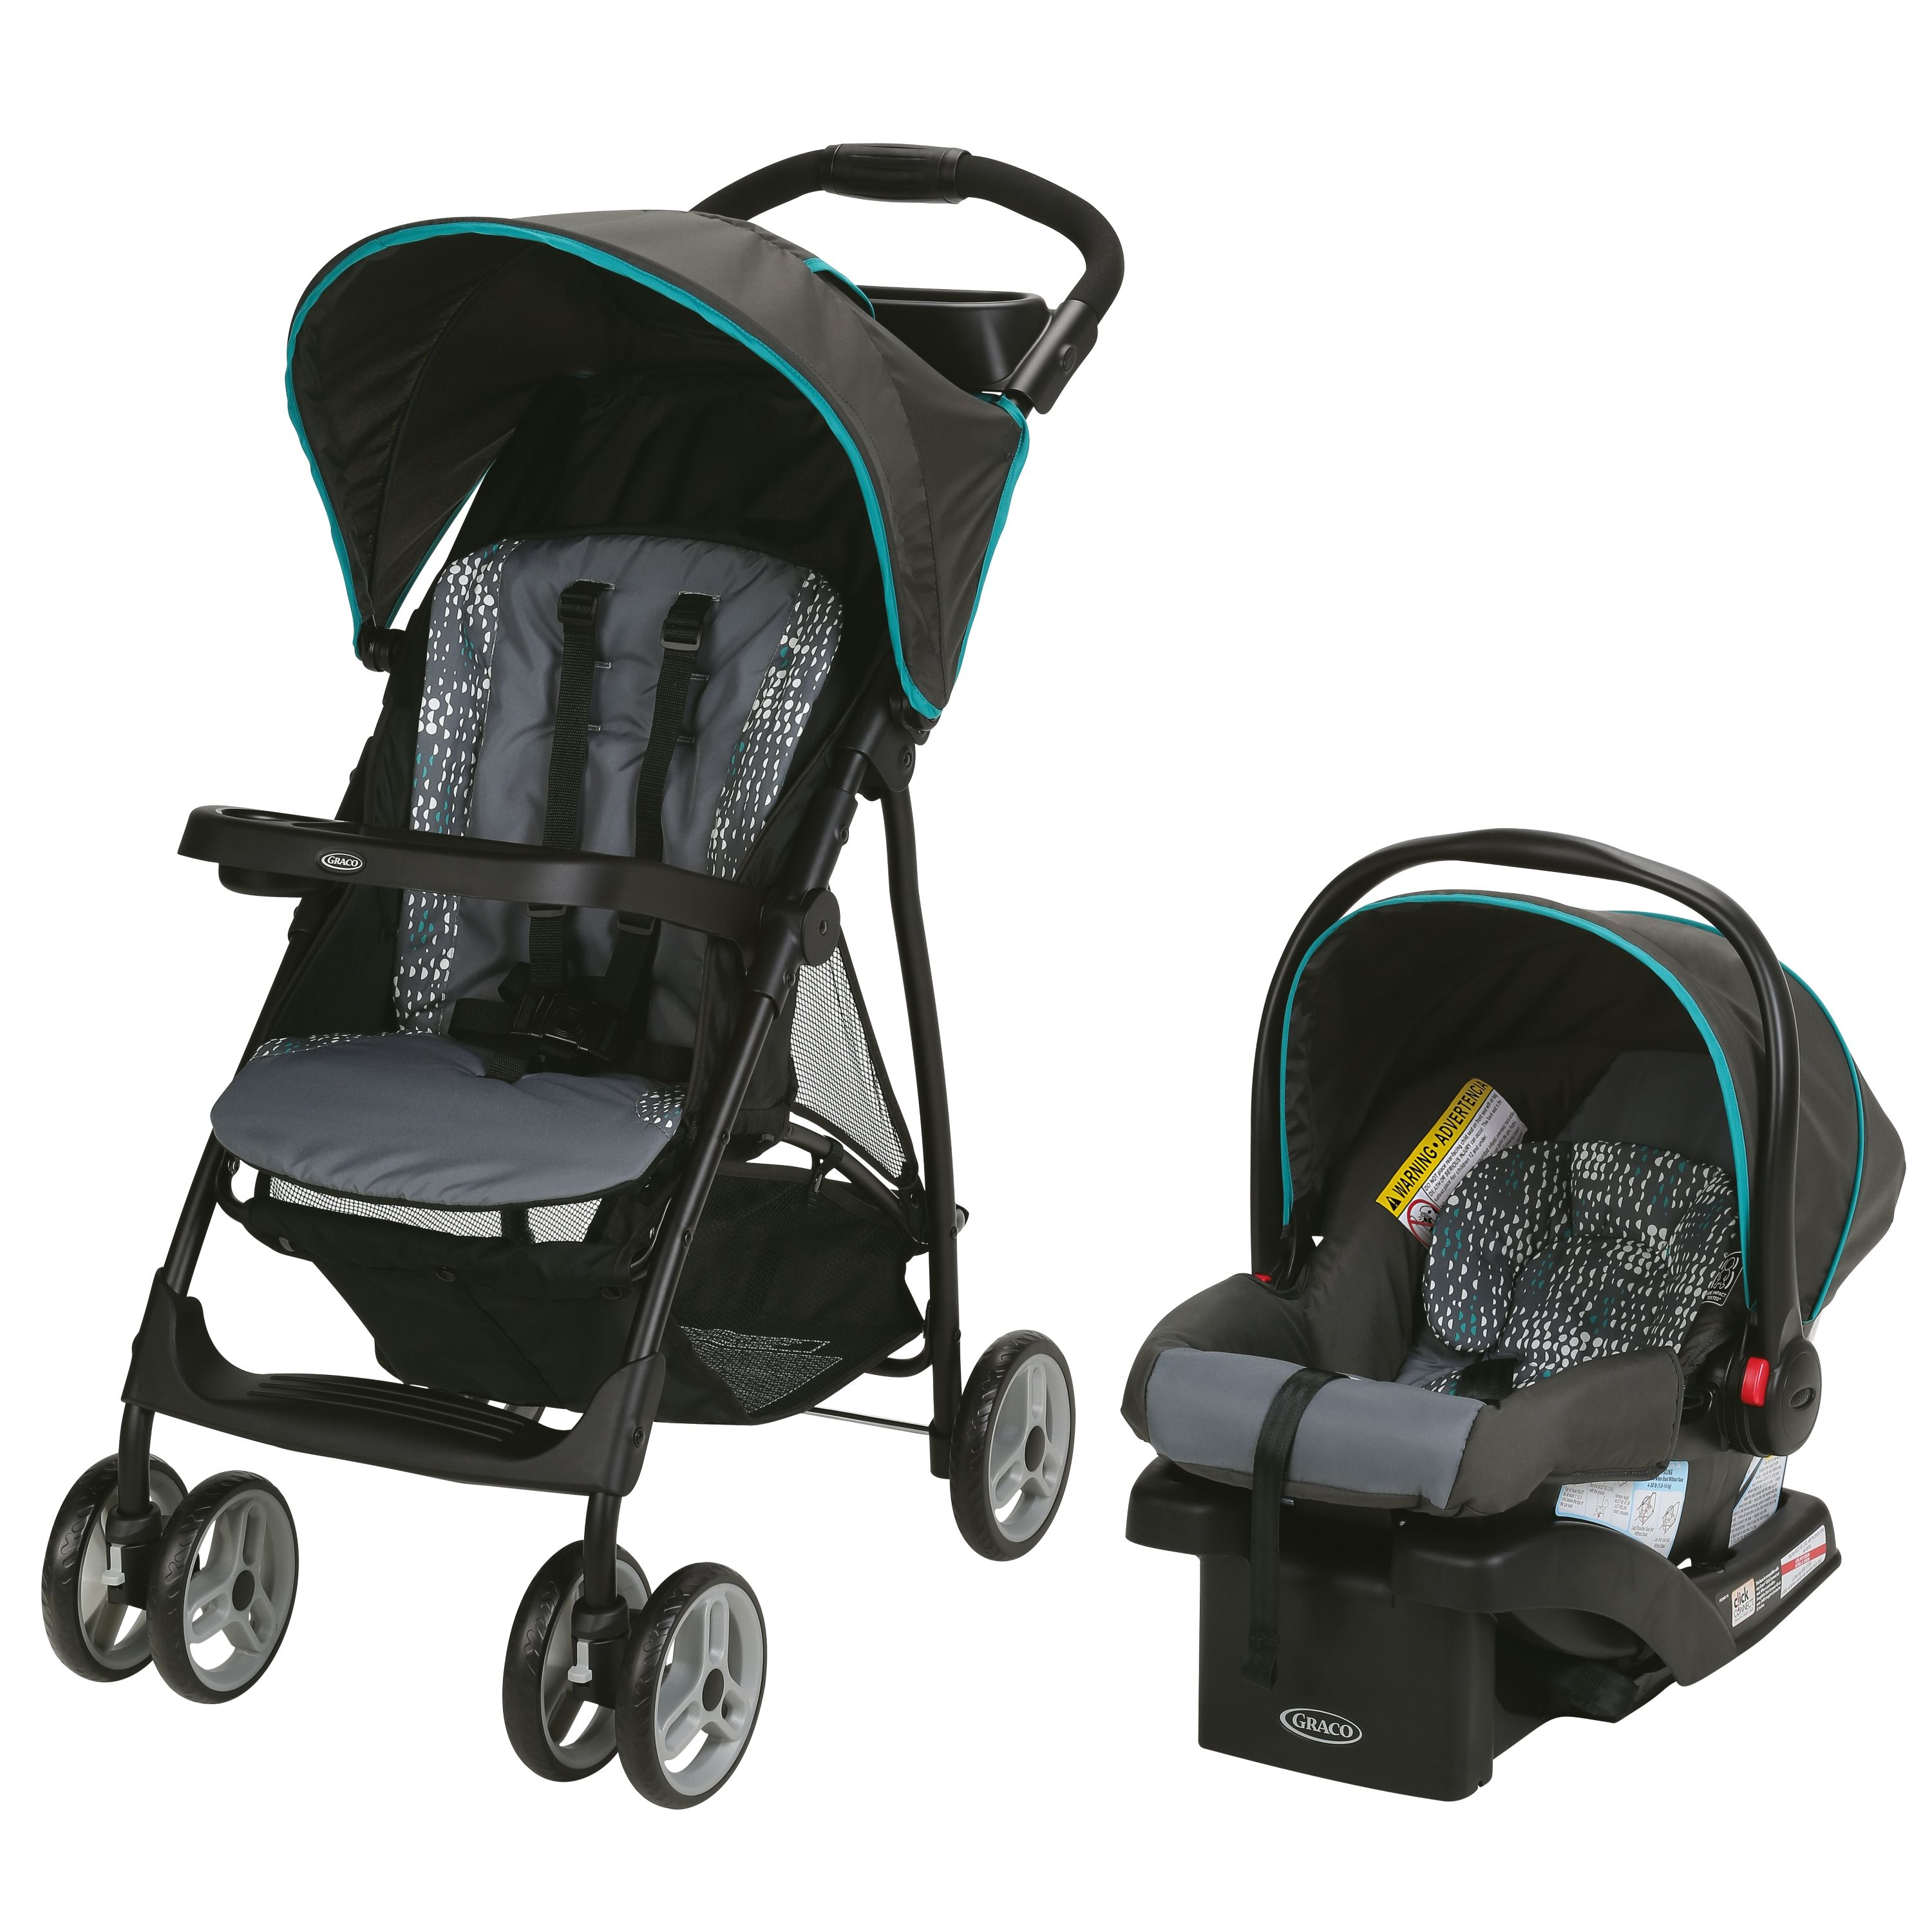 Baby in 2020 Travel system stroller, Baby car seats